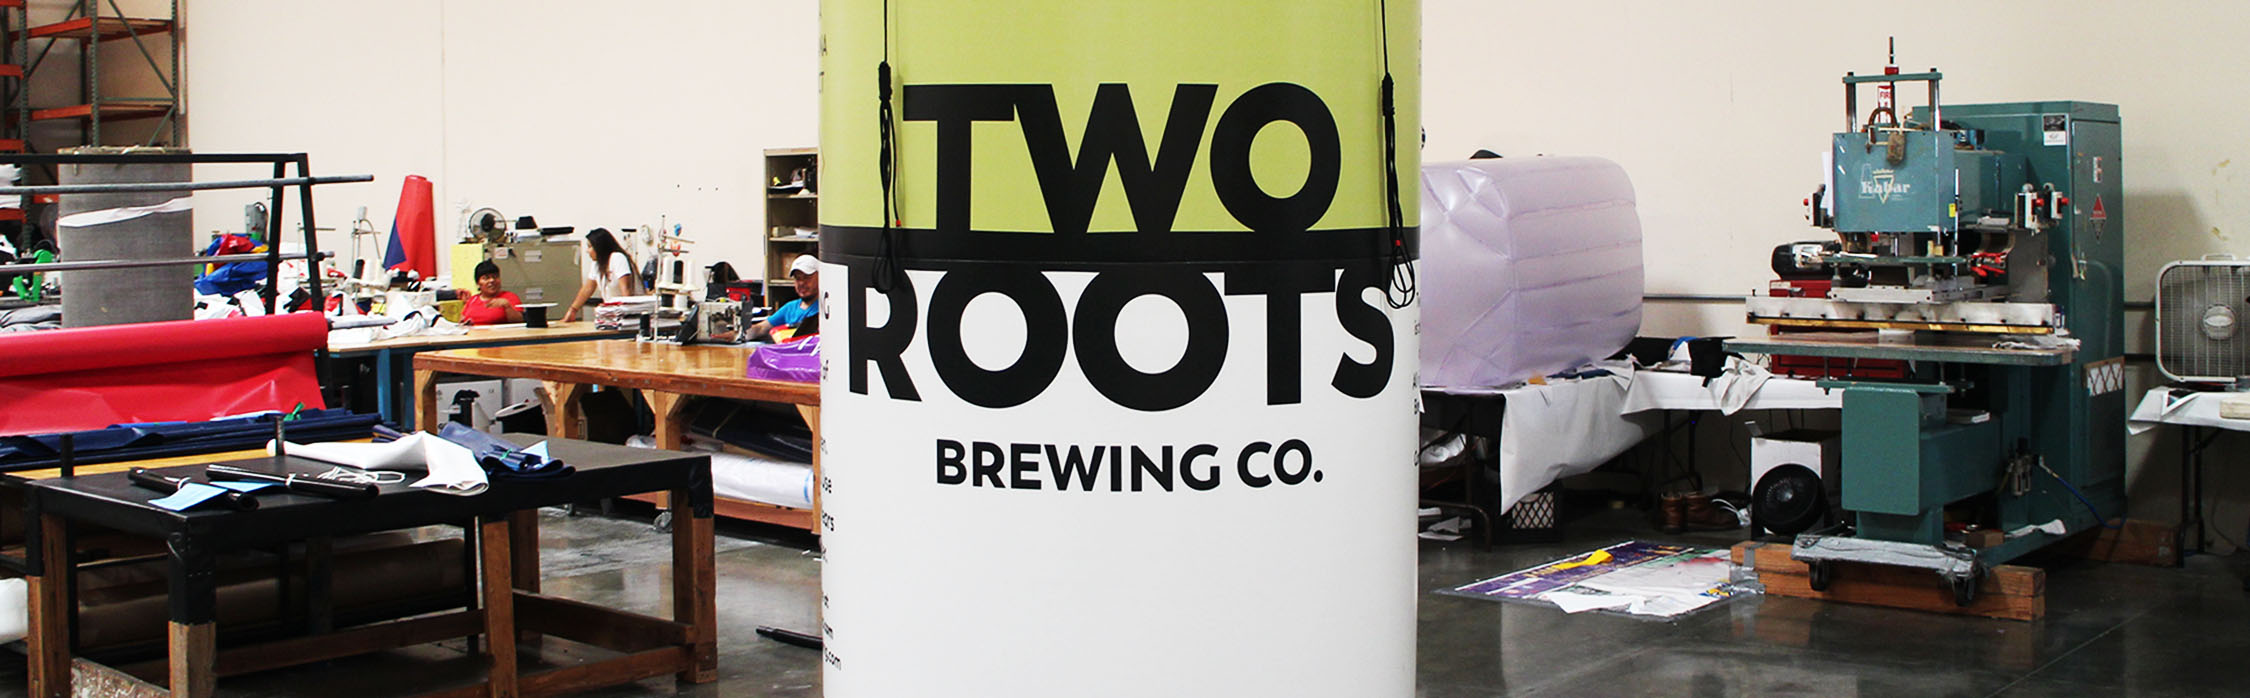 two-roots-beer-can-header.jpg